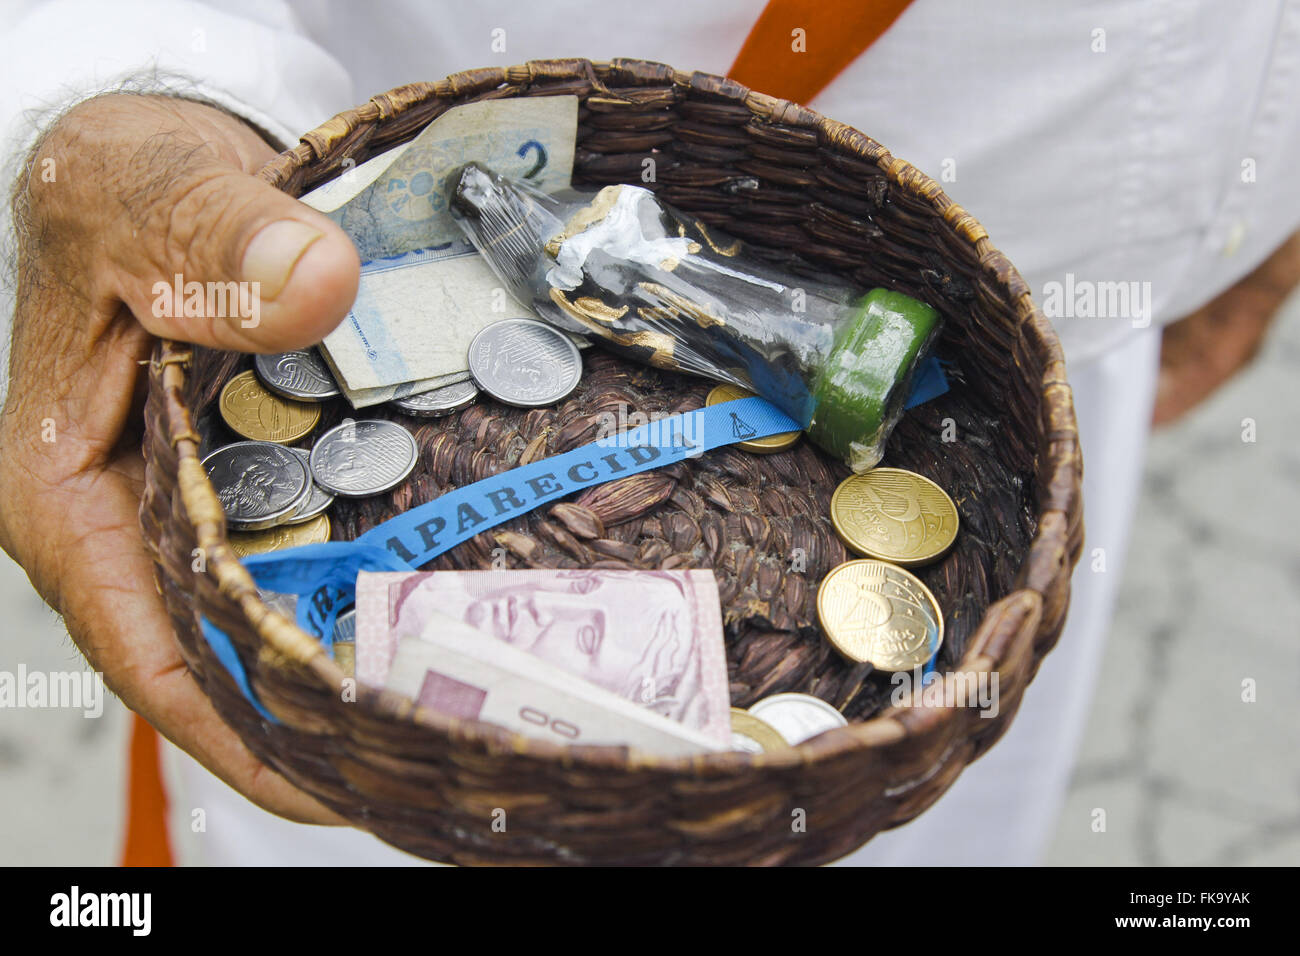 Collecting donations at the Feast of Saint Benedict - Stock Image